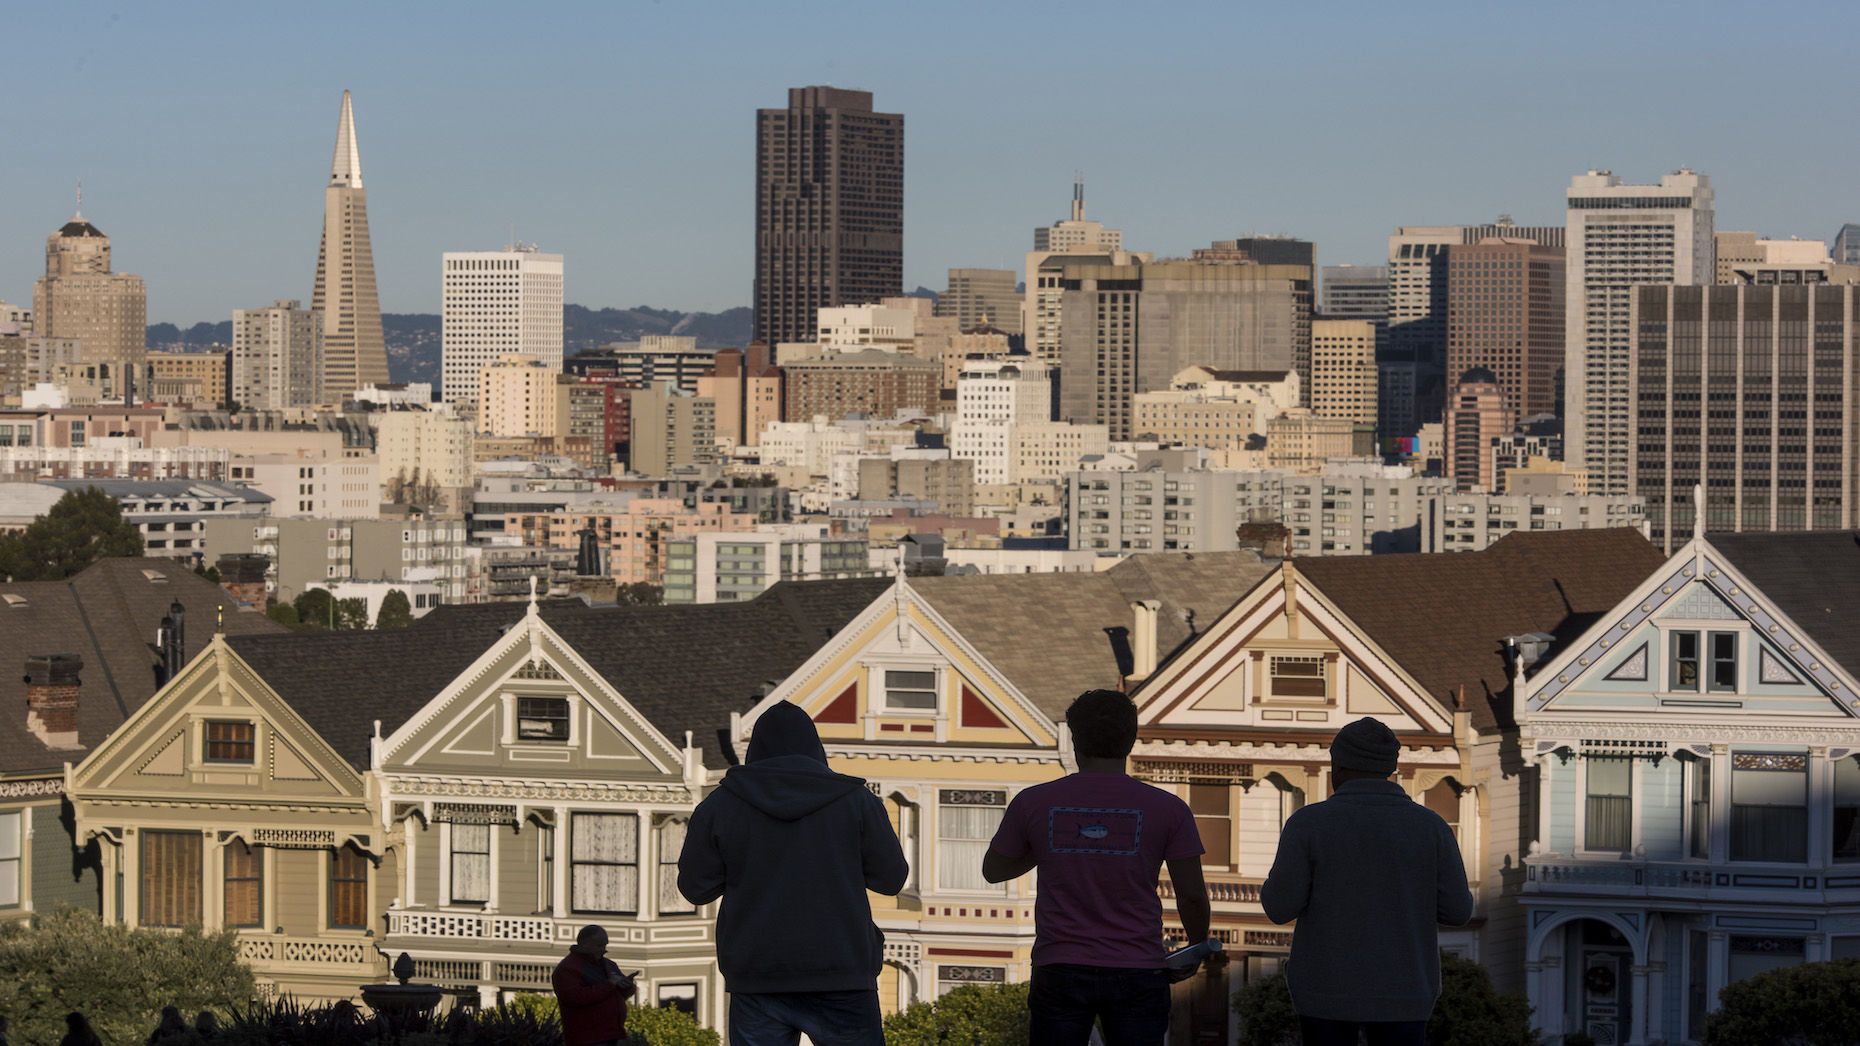 Advocates of housing development in the Bay Area often run up against zoning laws and local objections to development. Photo: Bloomberg